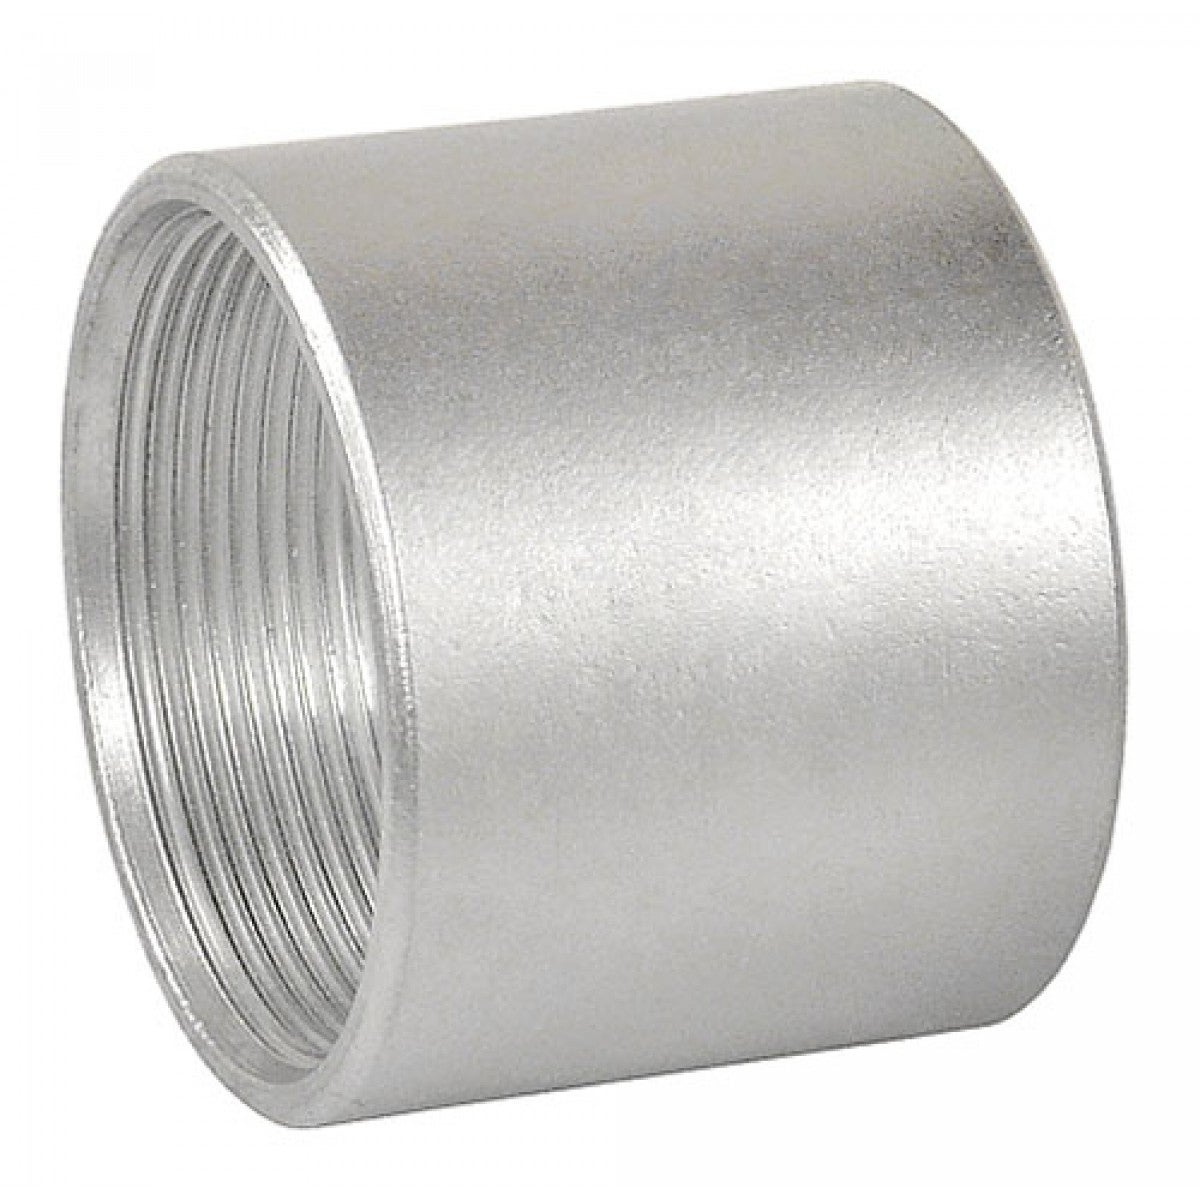 2 Pcs, 3-1/2 in. Galvanized Rigid Threaded Coupling, Zinc Plated Steel